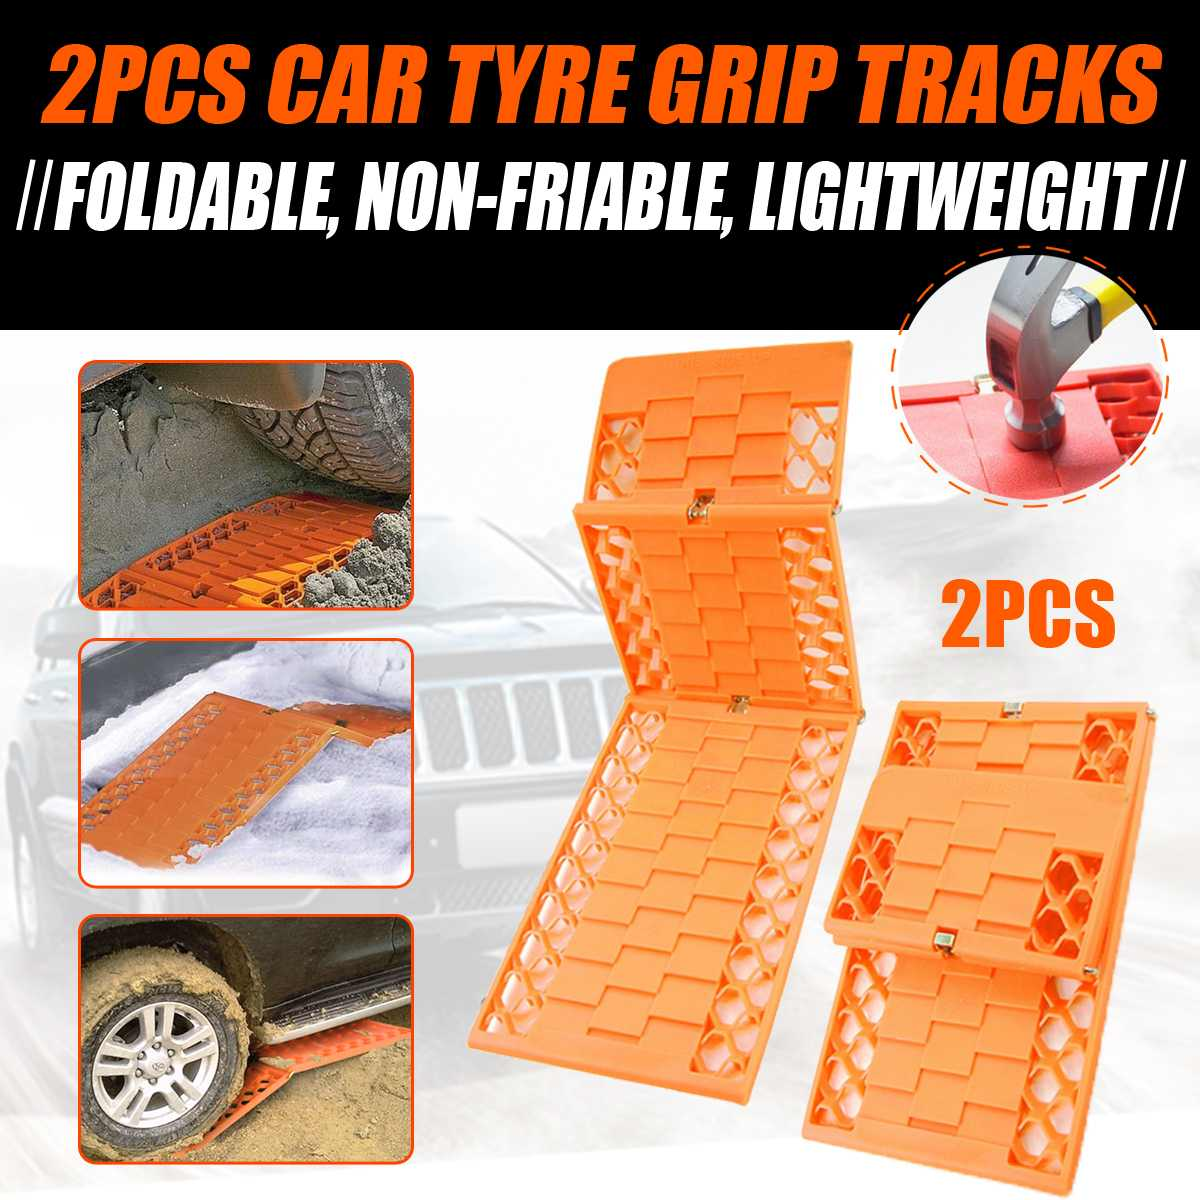 2Pcs/Set Tyre Grip Tracks Car Security Snow Mud Sand Rescue Escaper Traction Tracks Mats Folding Rubber Car Rescue Mats(China)